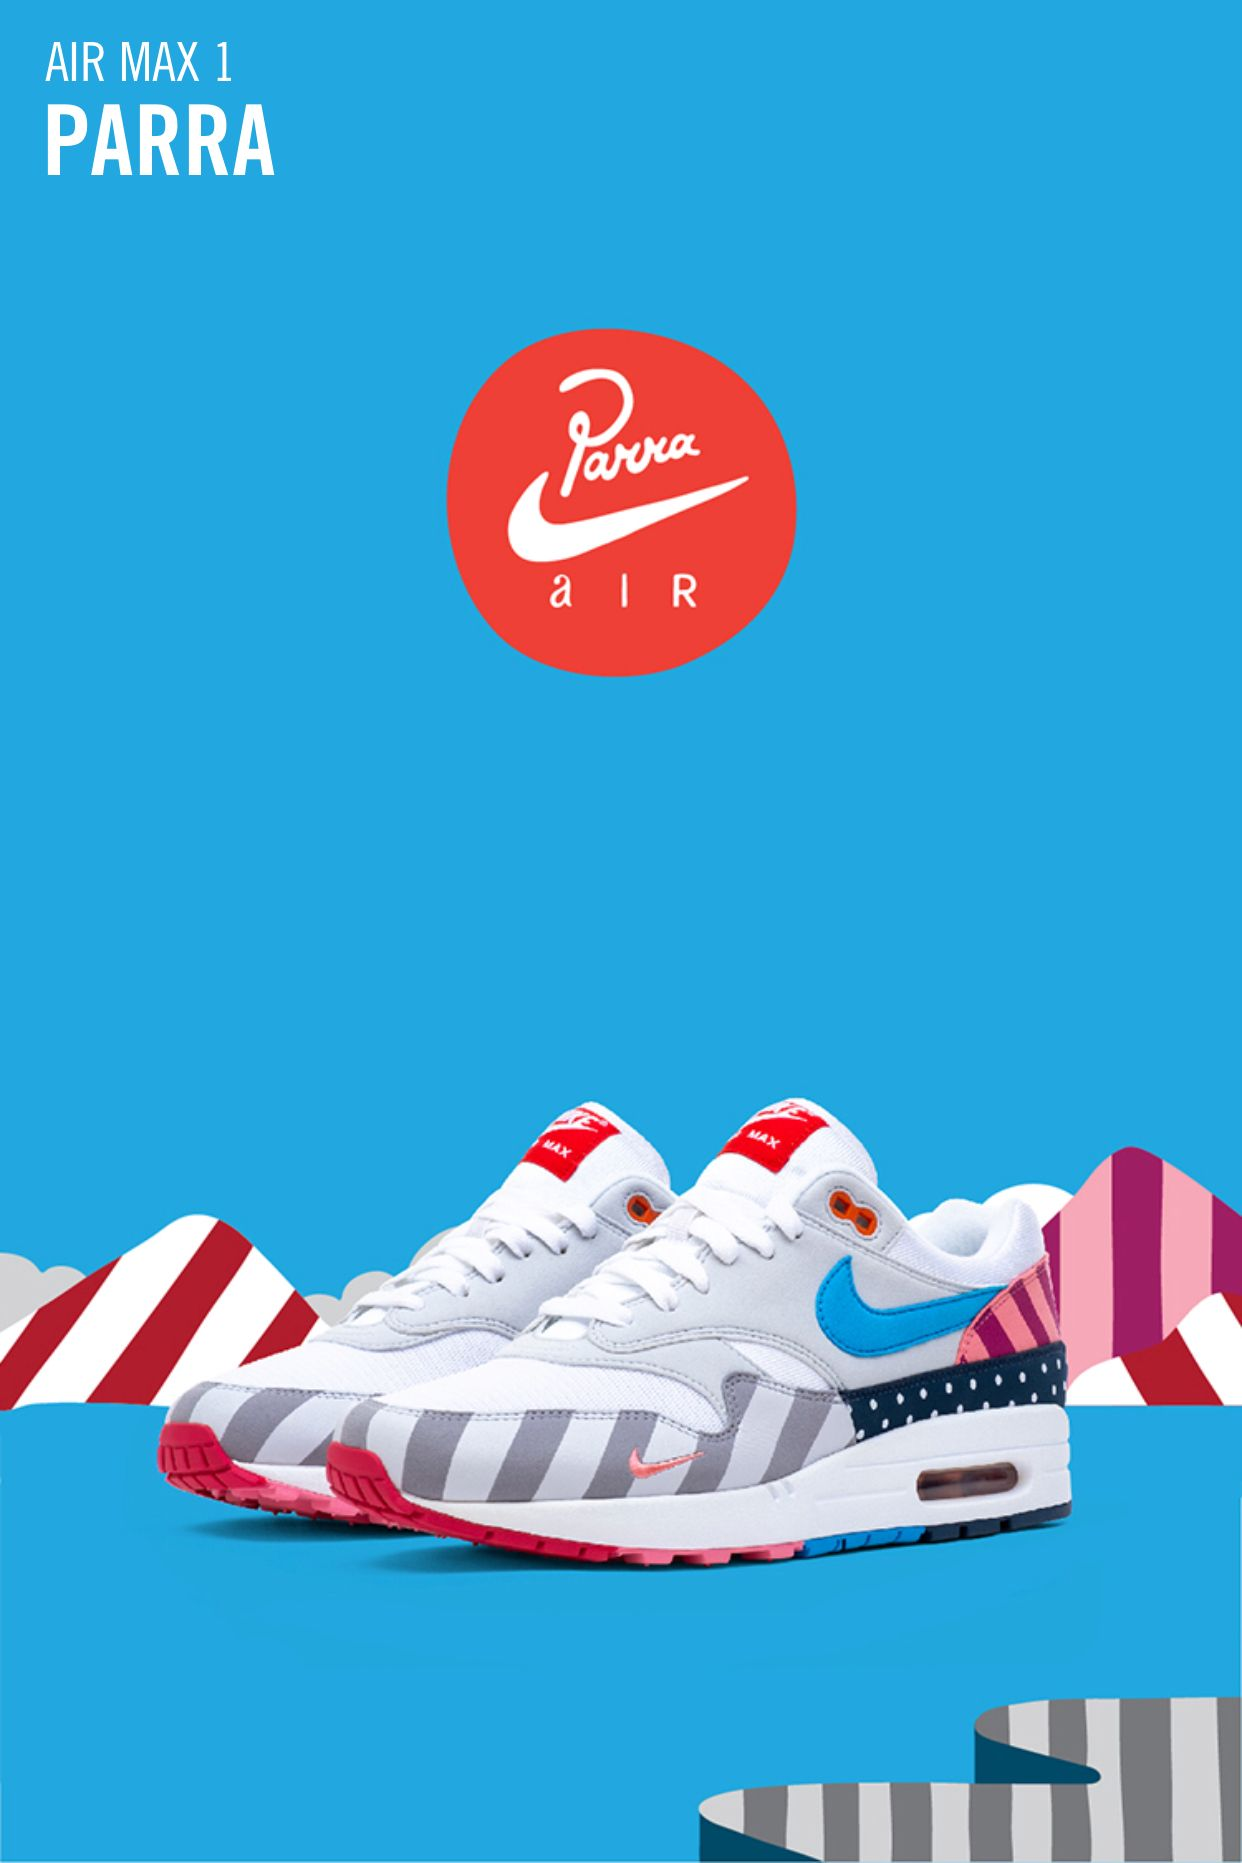 Pin by Cassi G on SHOES4LIFE Nike snkrs, Air max 1, Air max  Nike snkrs, Air max 1, Air max